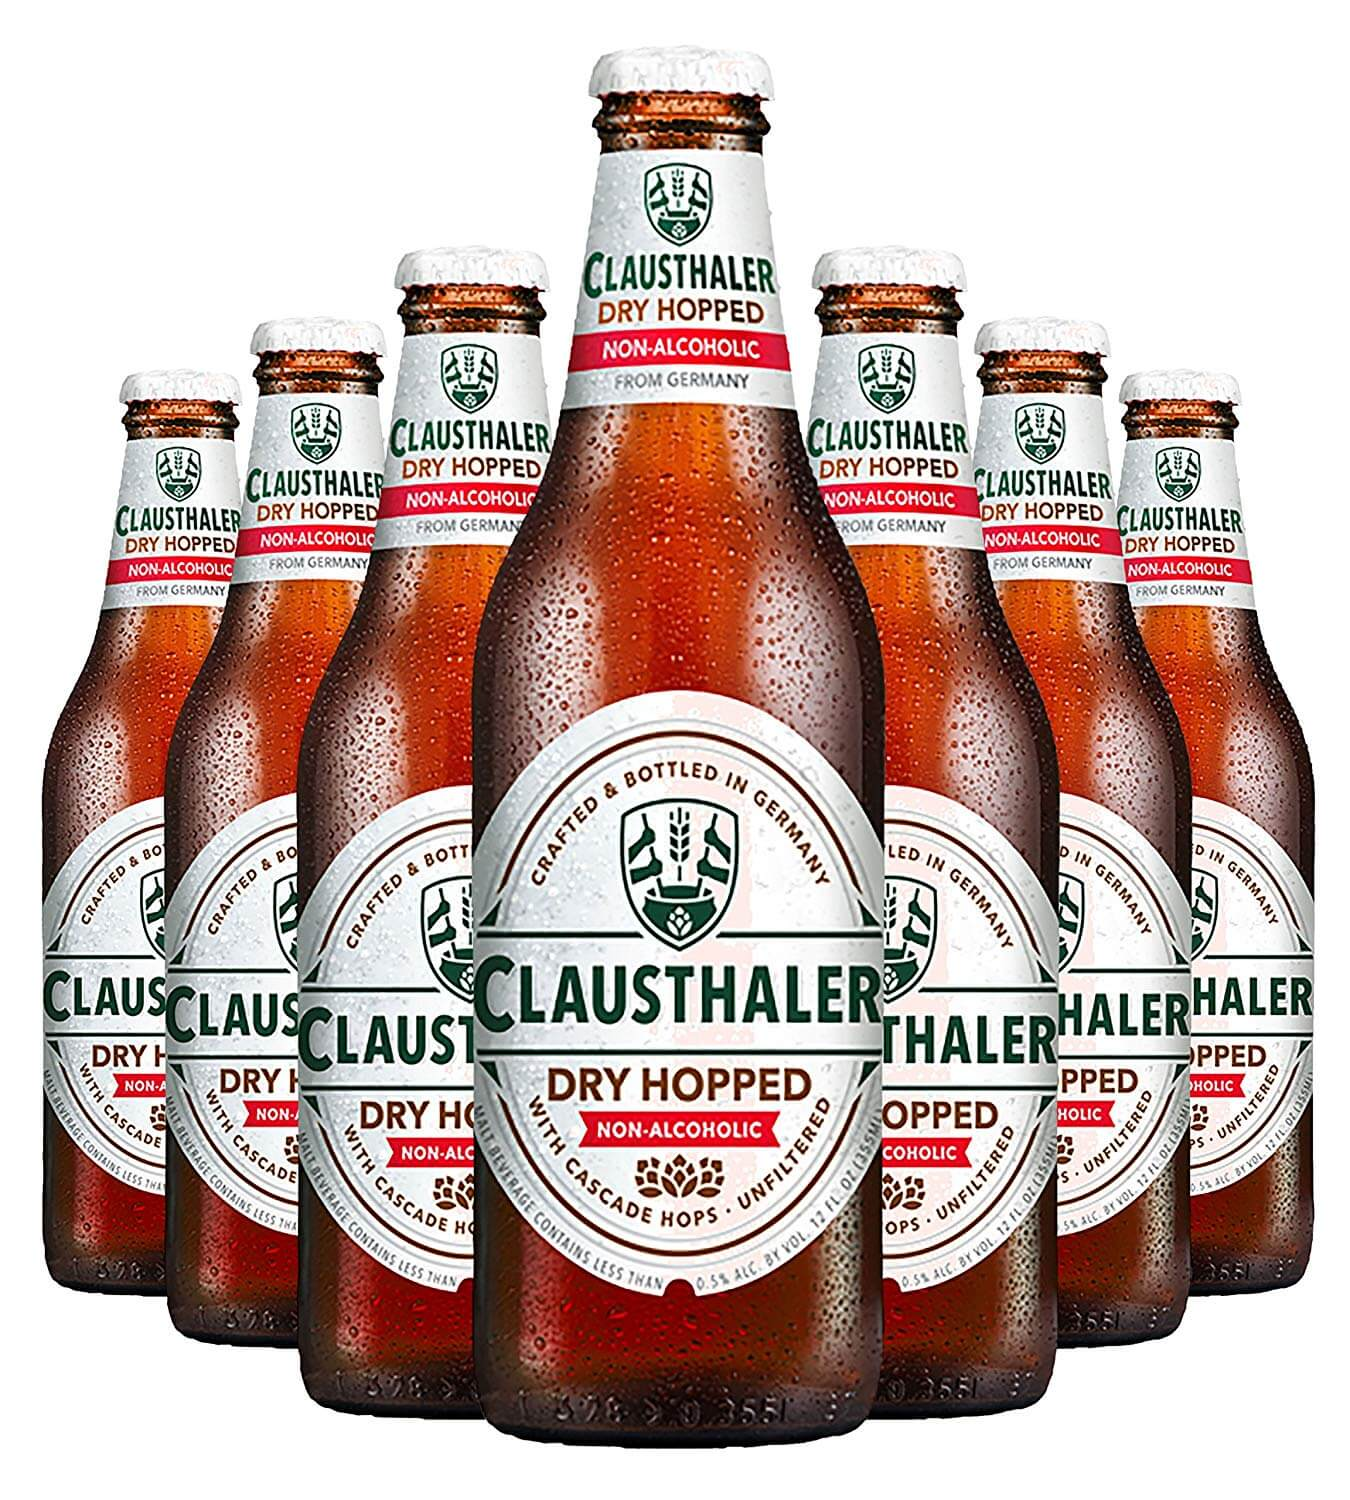 Clausthaler Amber Dry Hopped Non-Alcoholic Beer